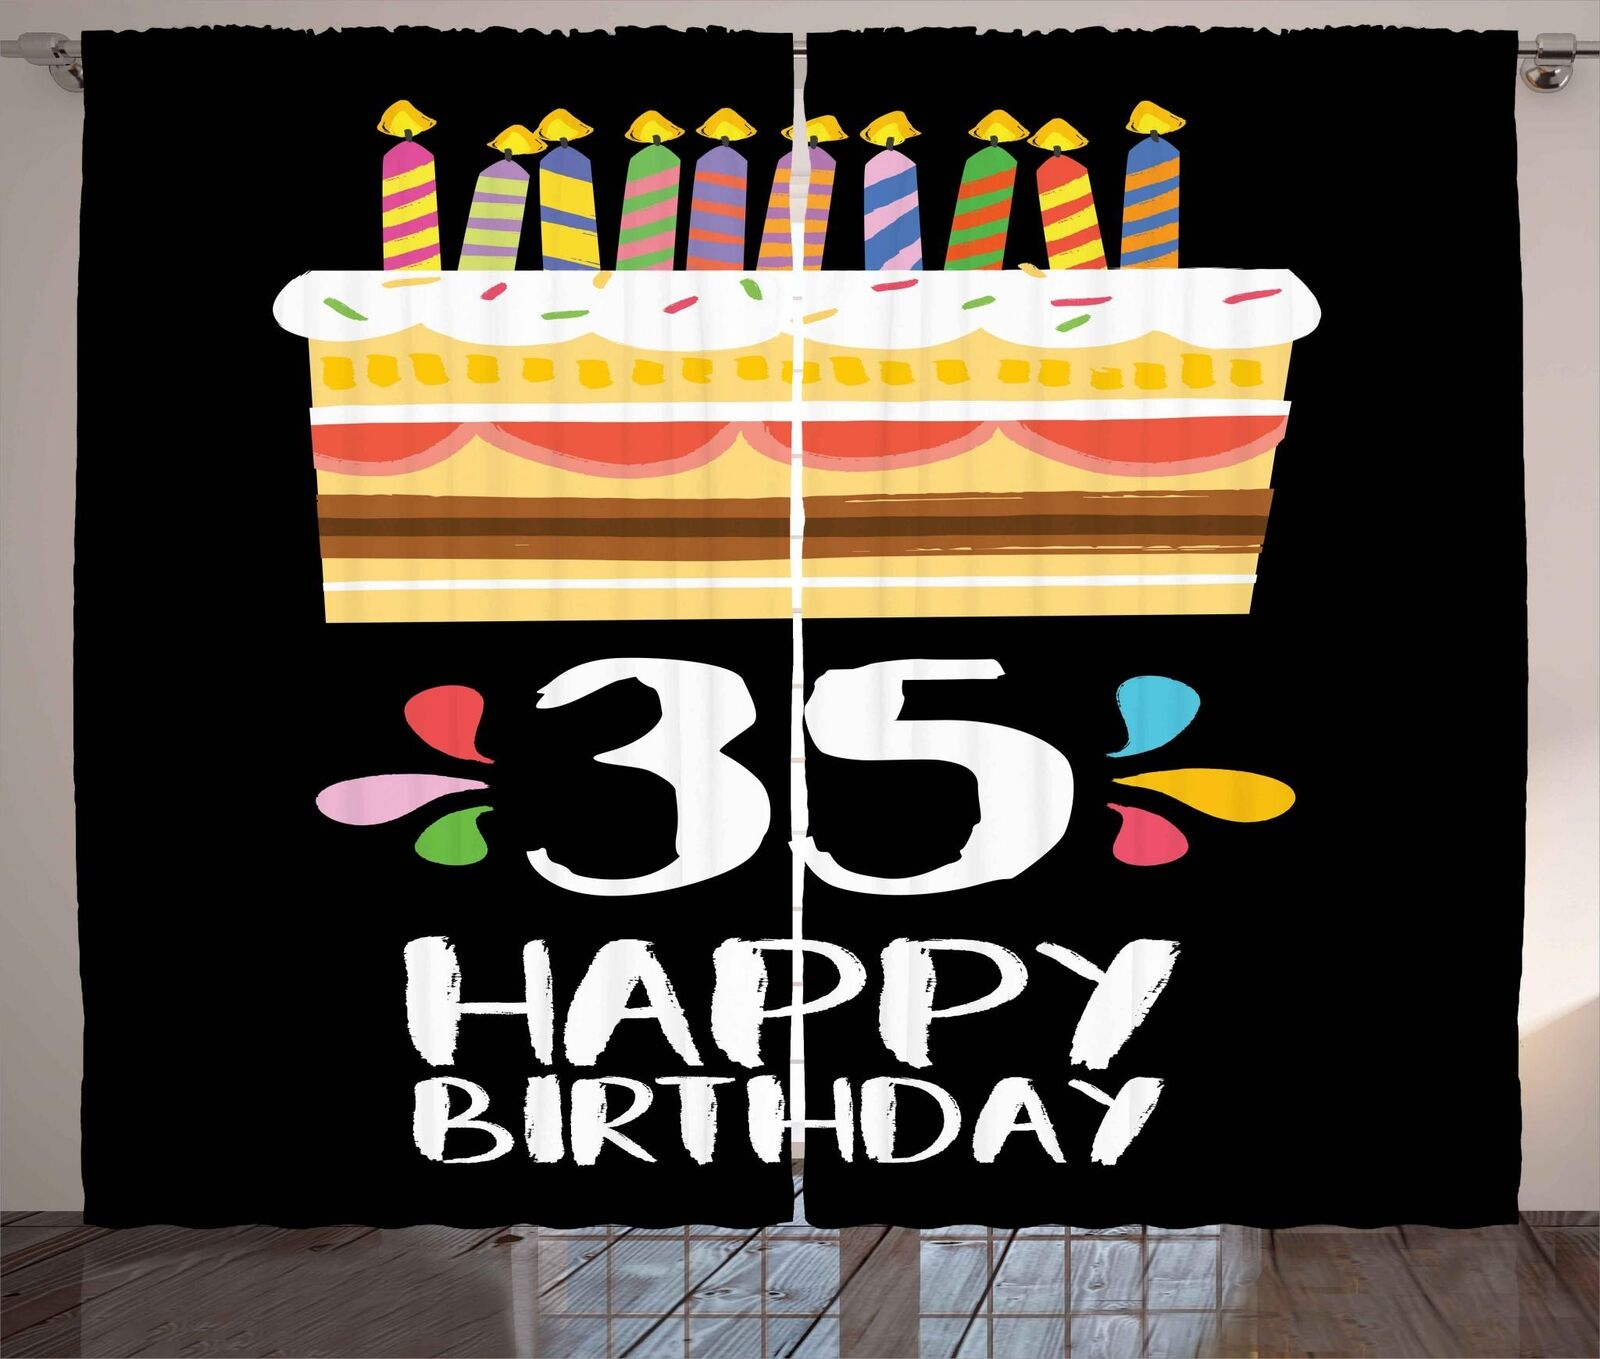 35th Birthday Curtains 2 Panel Set Decor 5 Dimensiones Available Window Drapes